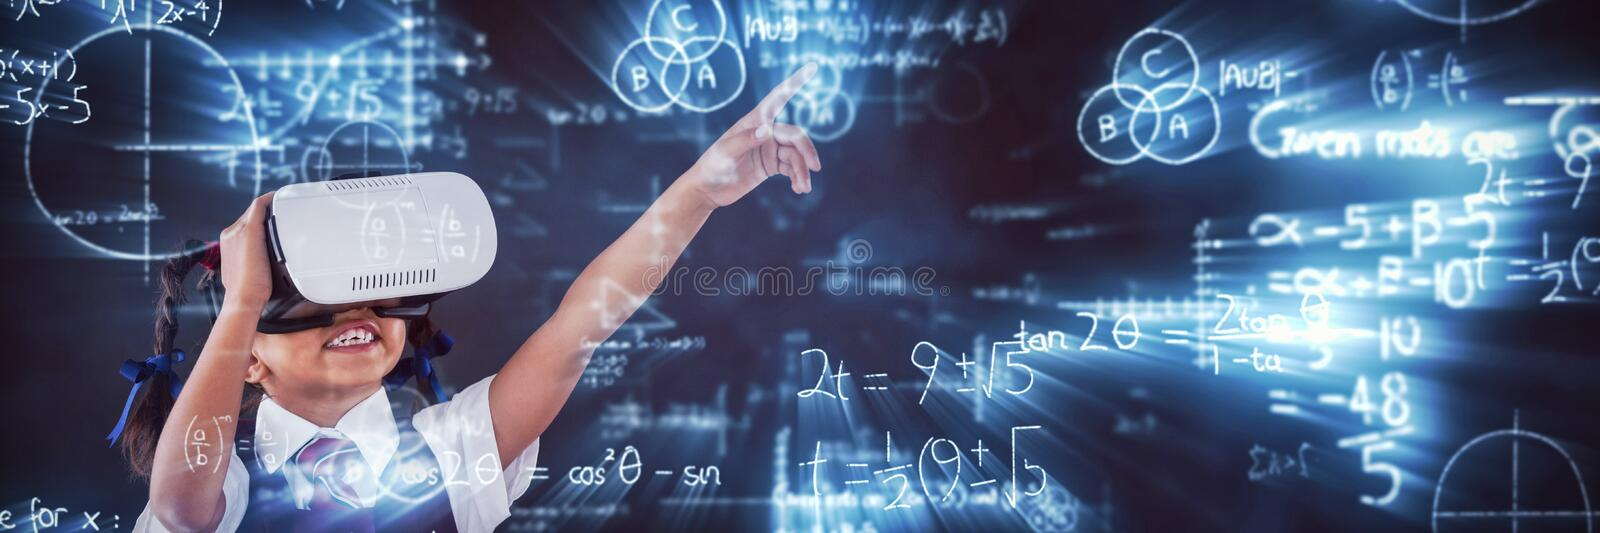 Composite image of digitally composite image of mathematical equations with diagram. Digitally composite image of mathematical equations with diagram against vector illustration